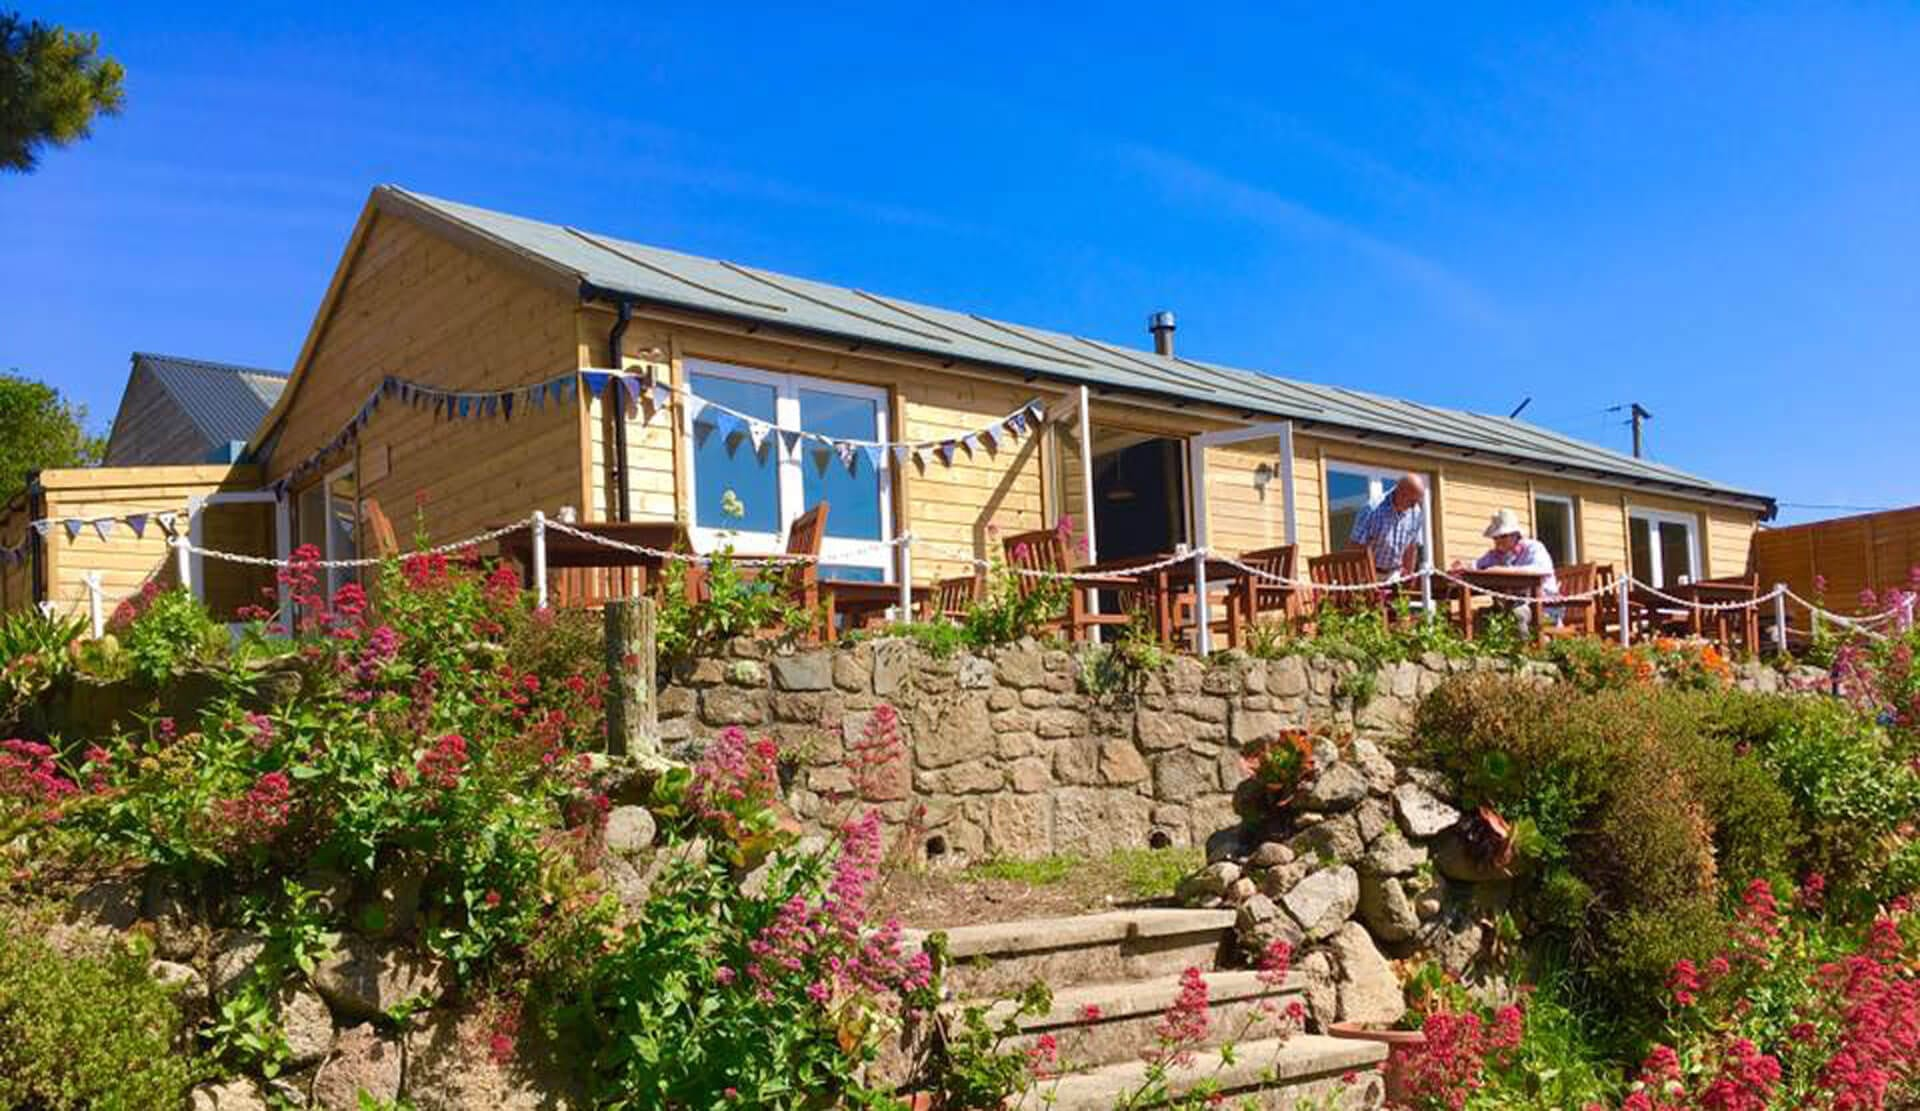 20% OFF WEEKEND DORM STAYS IN JUNE AT LONGSTONE LODGE